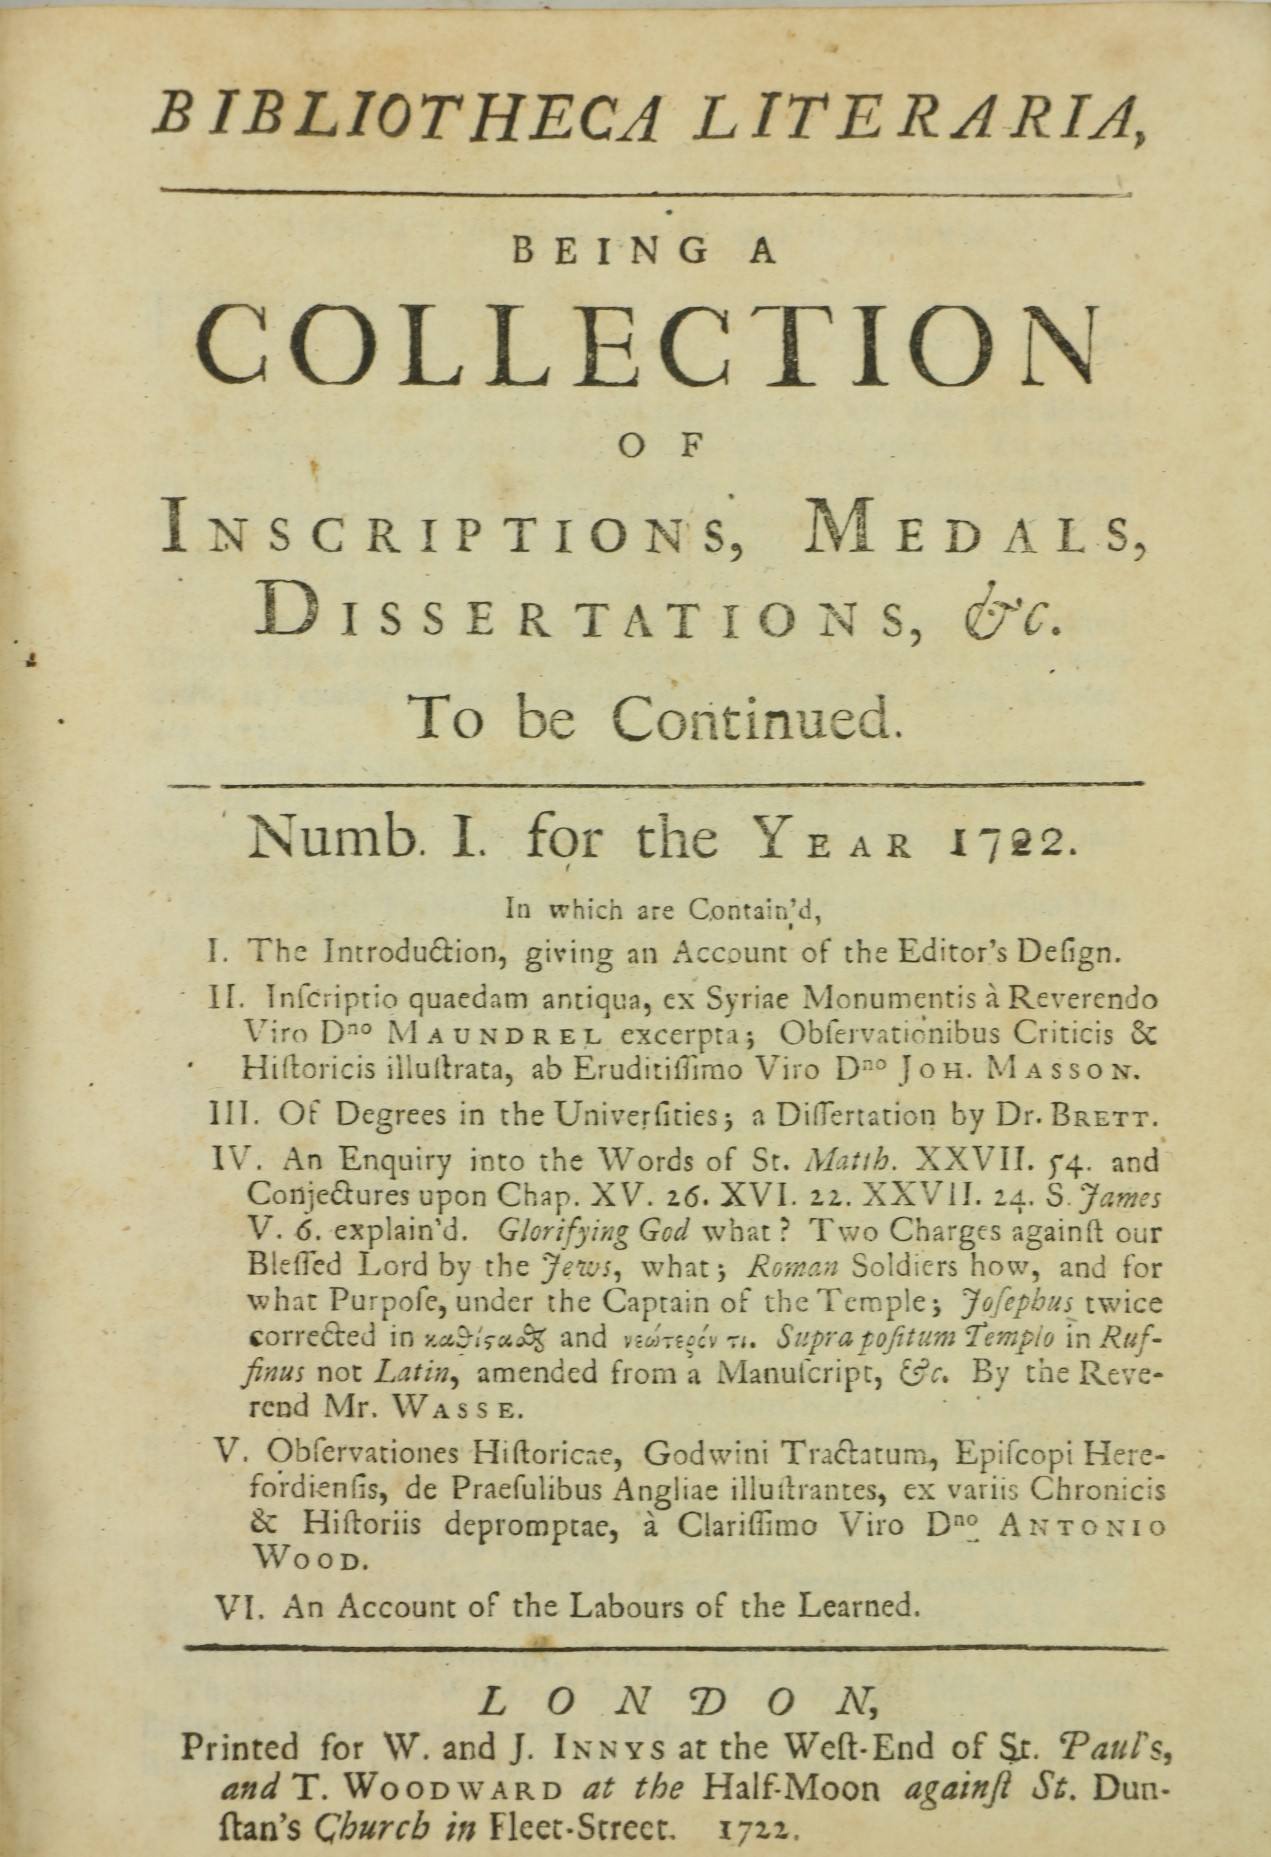 Periodical:ÿÿBibliotheca Literaria, Being a Collection of Inscriptions, Medals, Dissertations, - Image 3 of 4